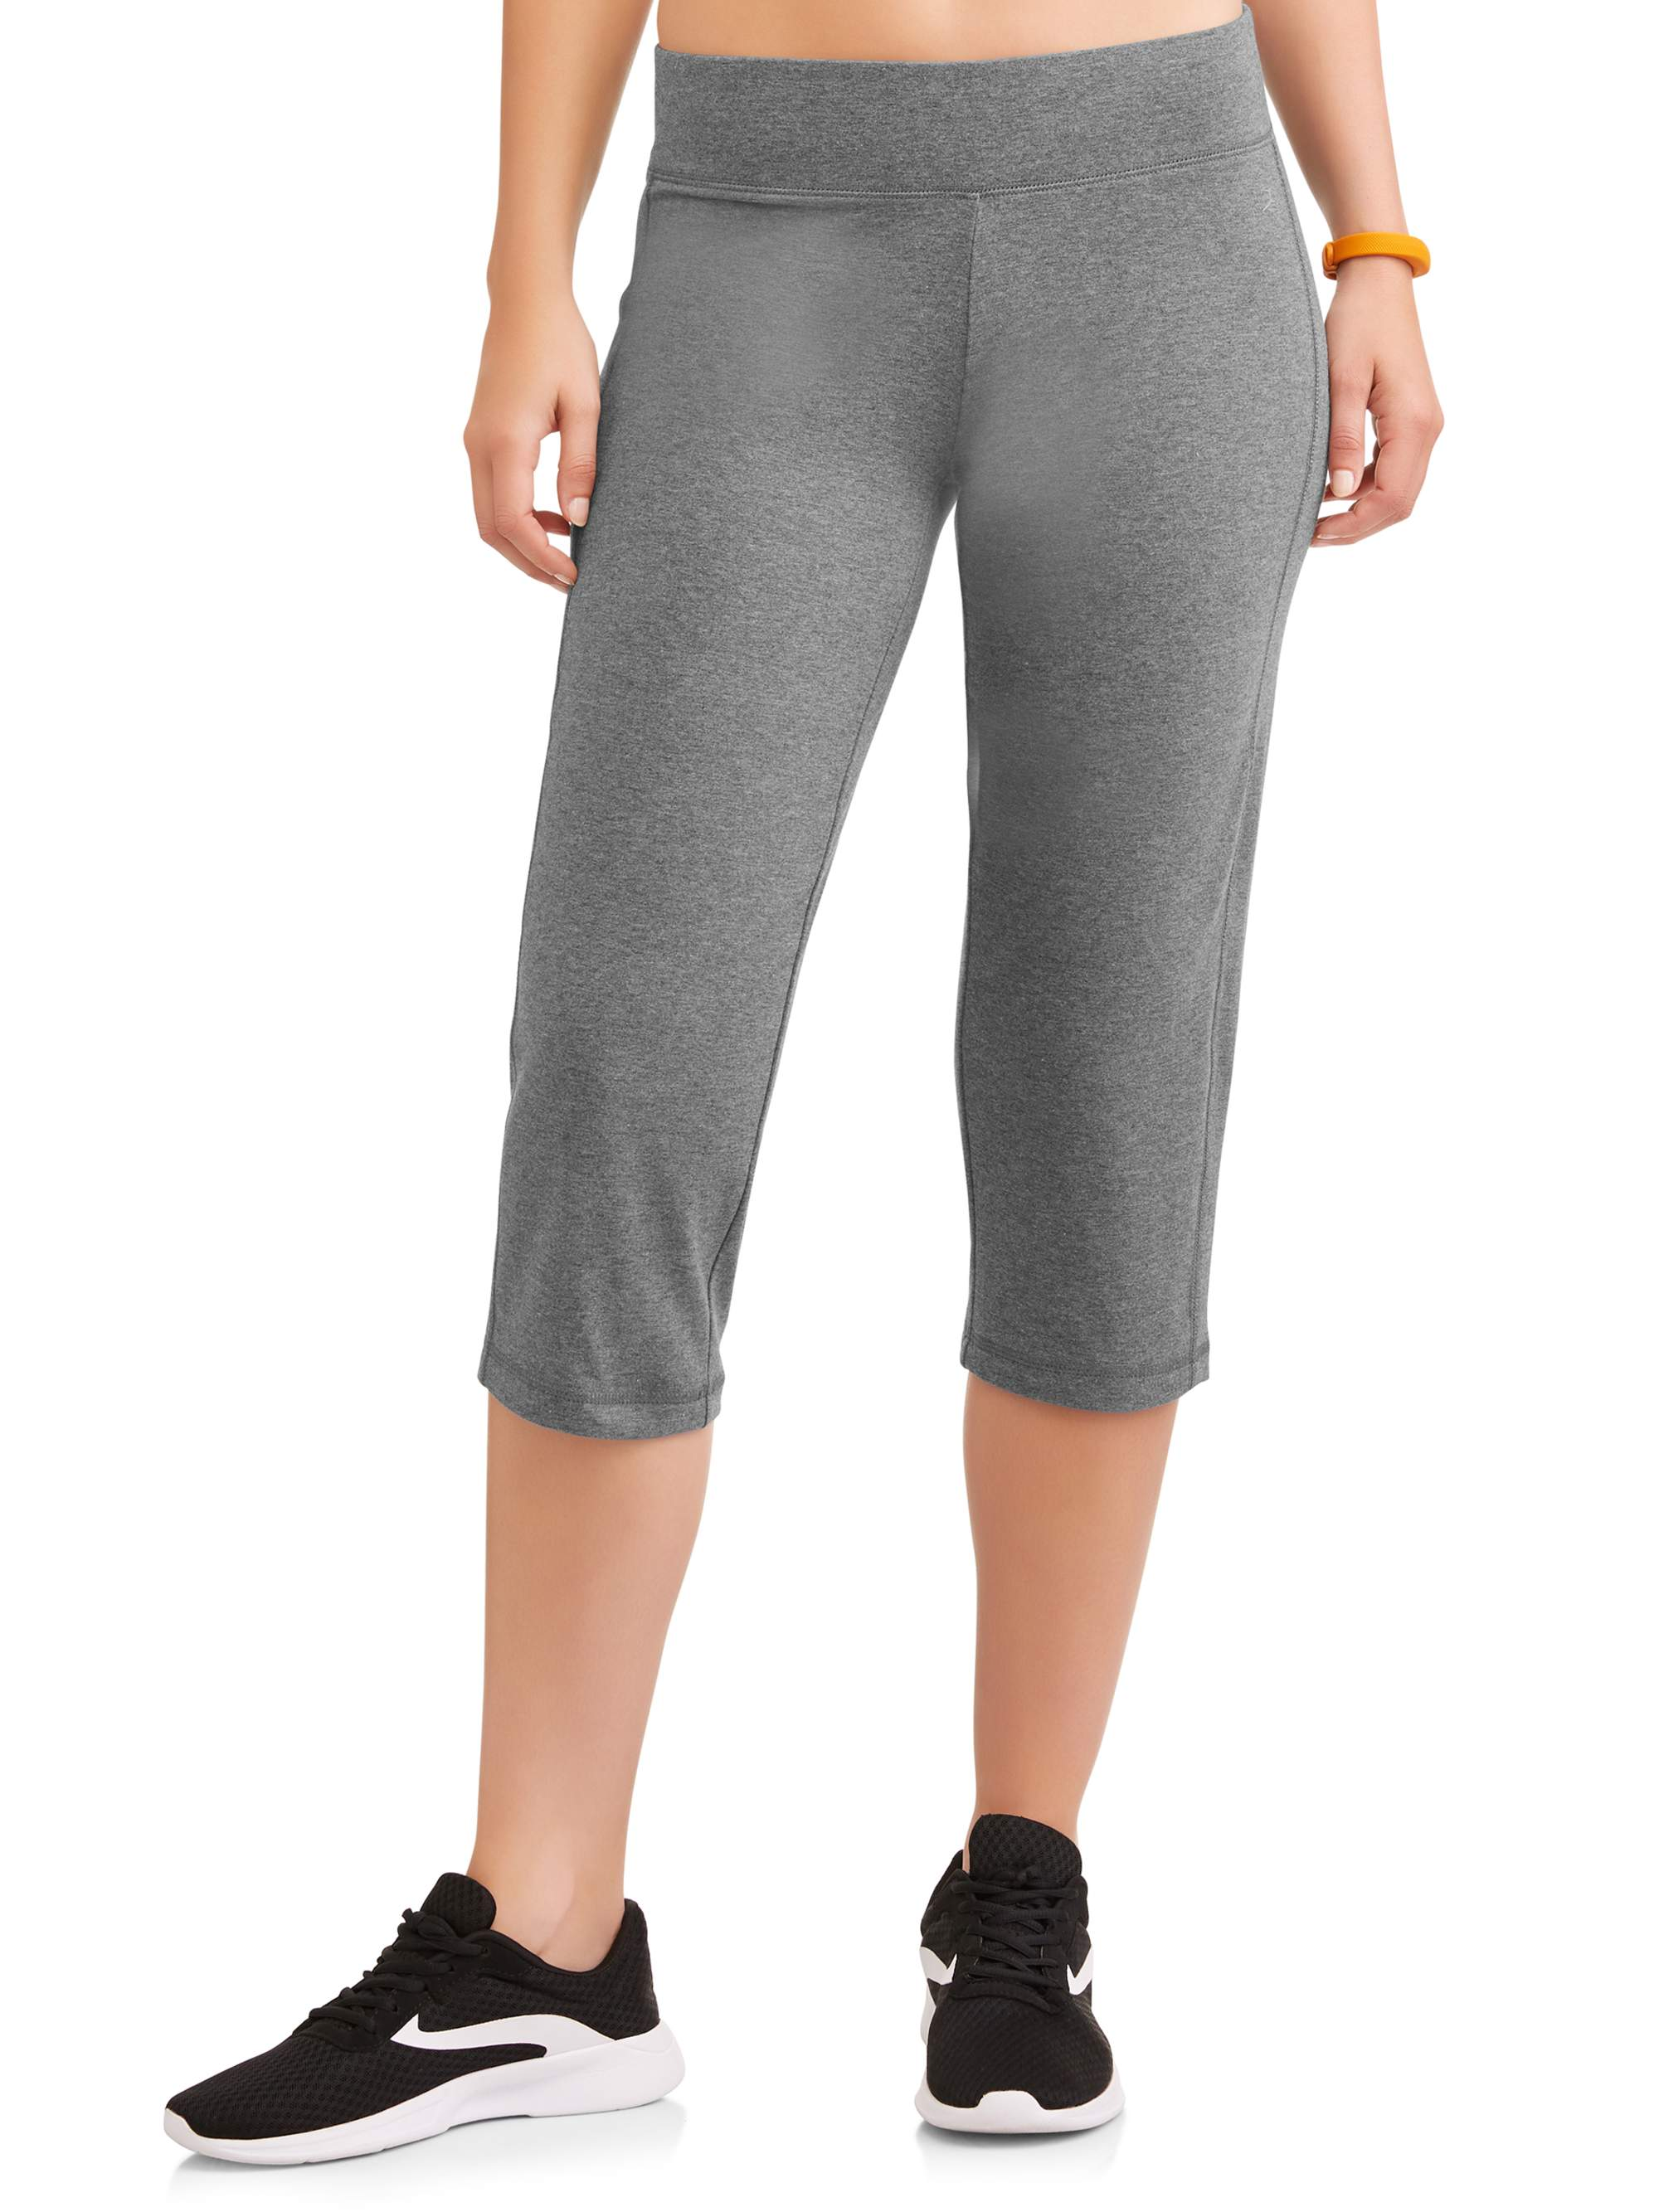 d03d485efbf65 Danskin - Women's Core Active Sleek Fit Crop Yoga Pant - Walmart.com